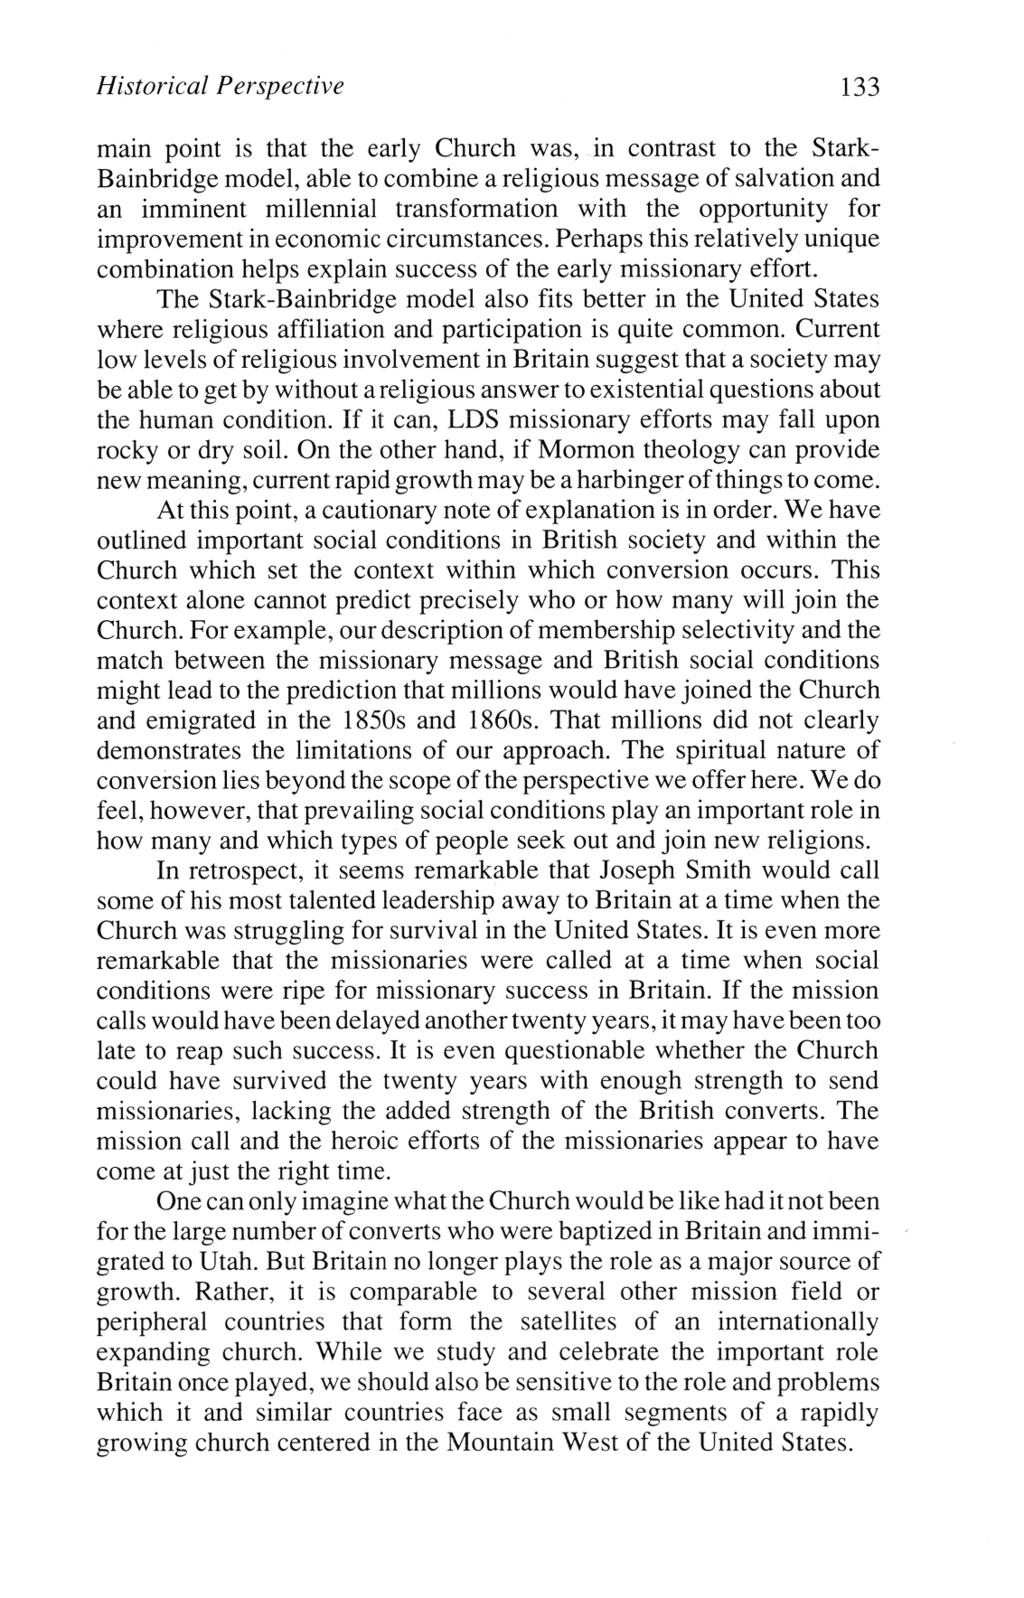 historical perspective 133 main point is that the early church was in contrast to the stark bainbridge model able to combine a religious message of salvation and an imminent millennial transformation